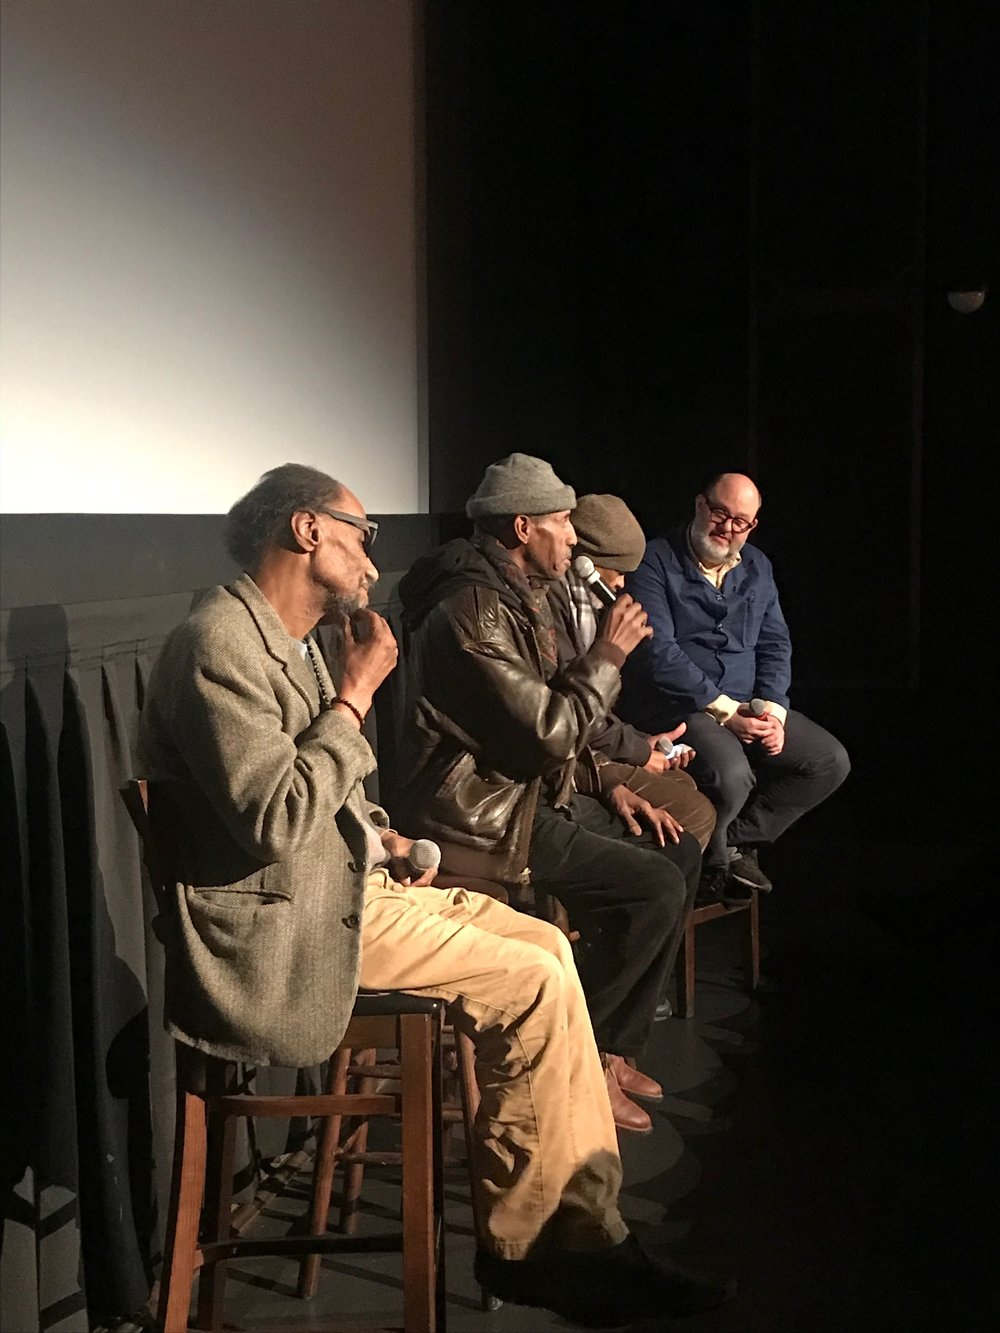 Q&A with producer Steve Cannon and co-producer Ishmael Reed.